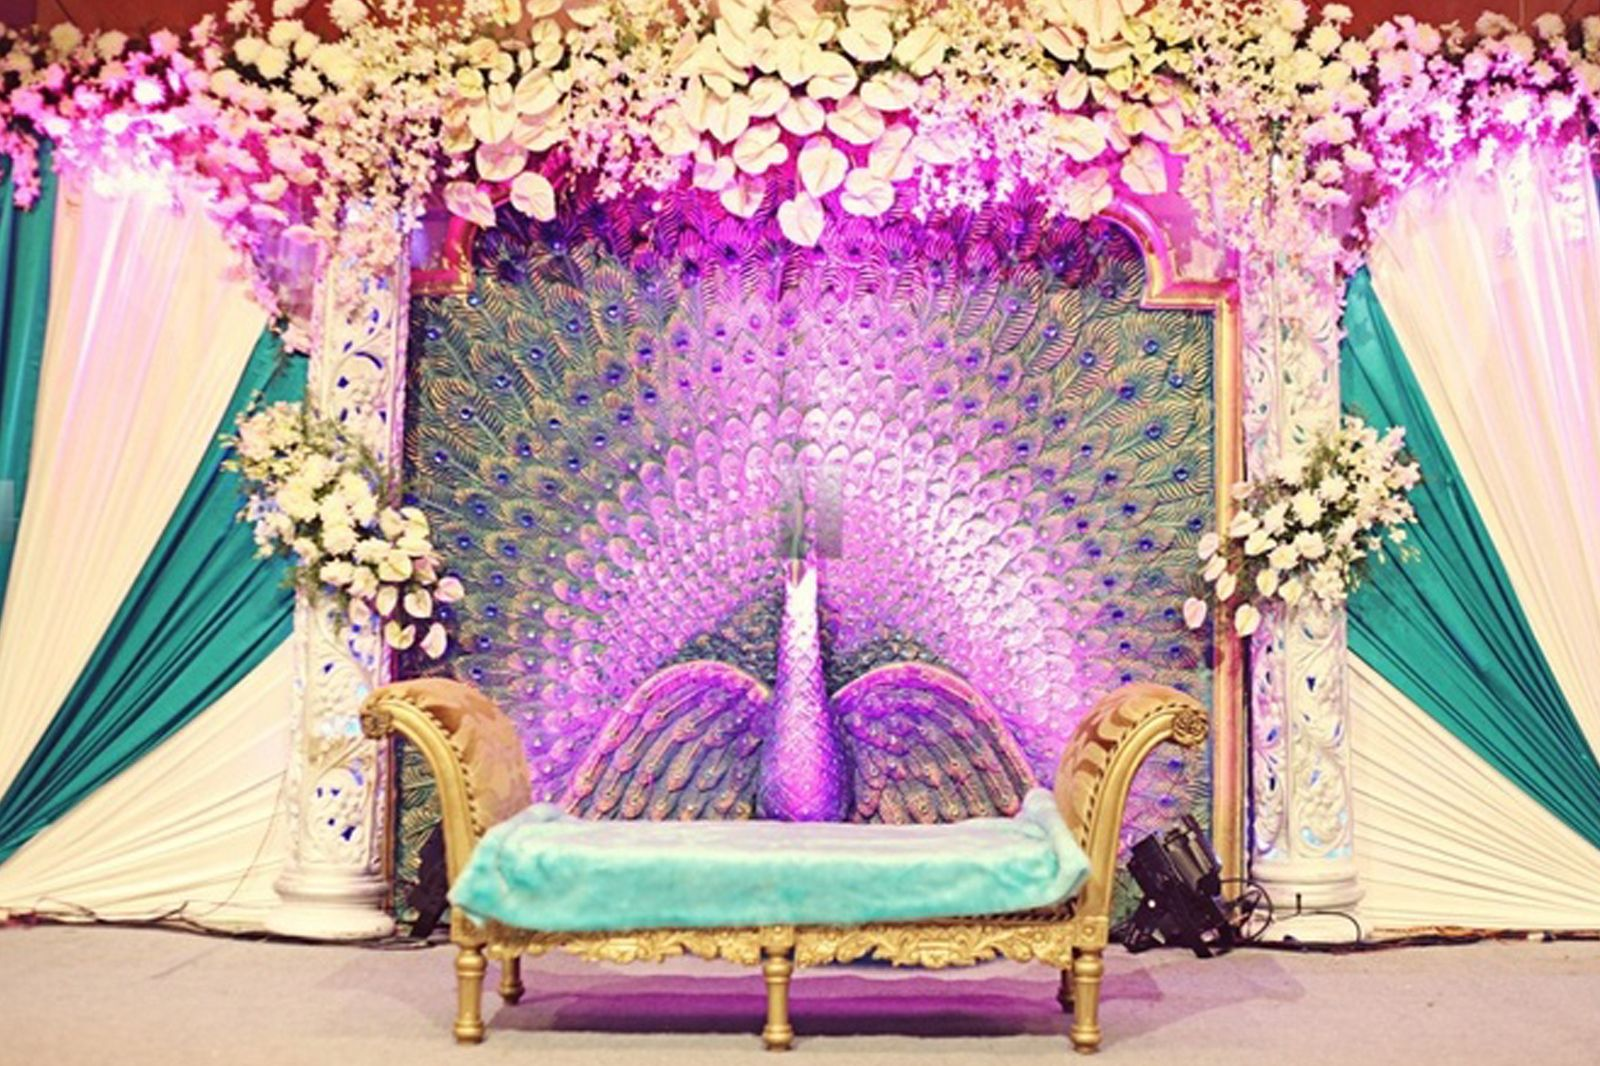 Indian wedding decorations wedding pinterest indian wedding indian wedding decorations junglespirit Images